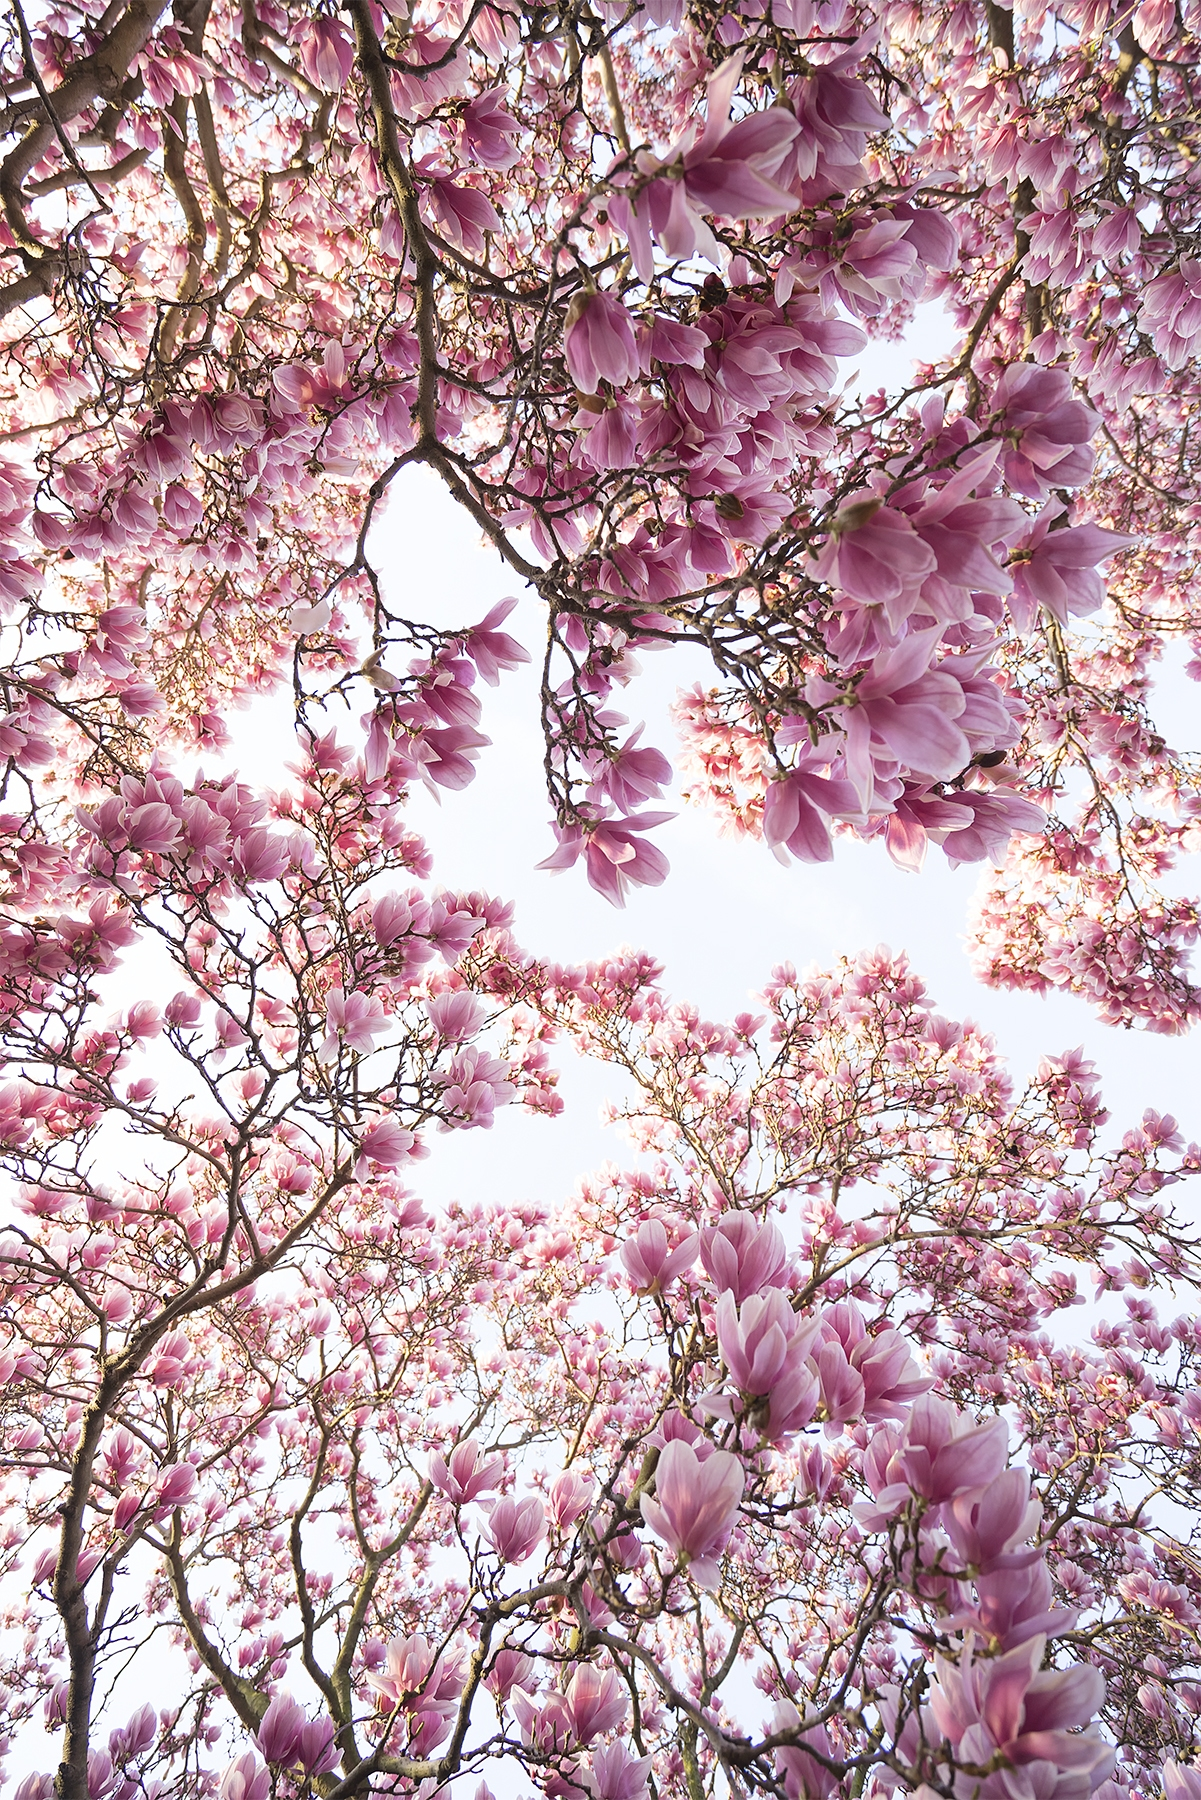 flowers, pink, tree, magnolias, smithsonian, garden, look up, dream,